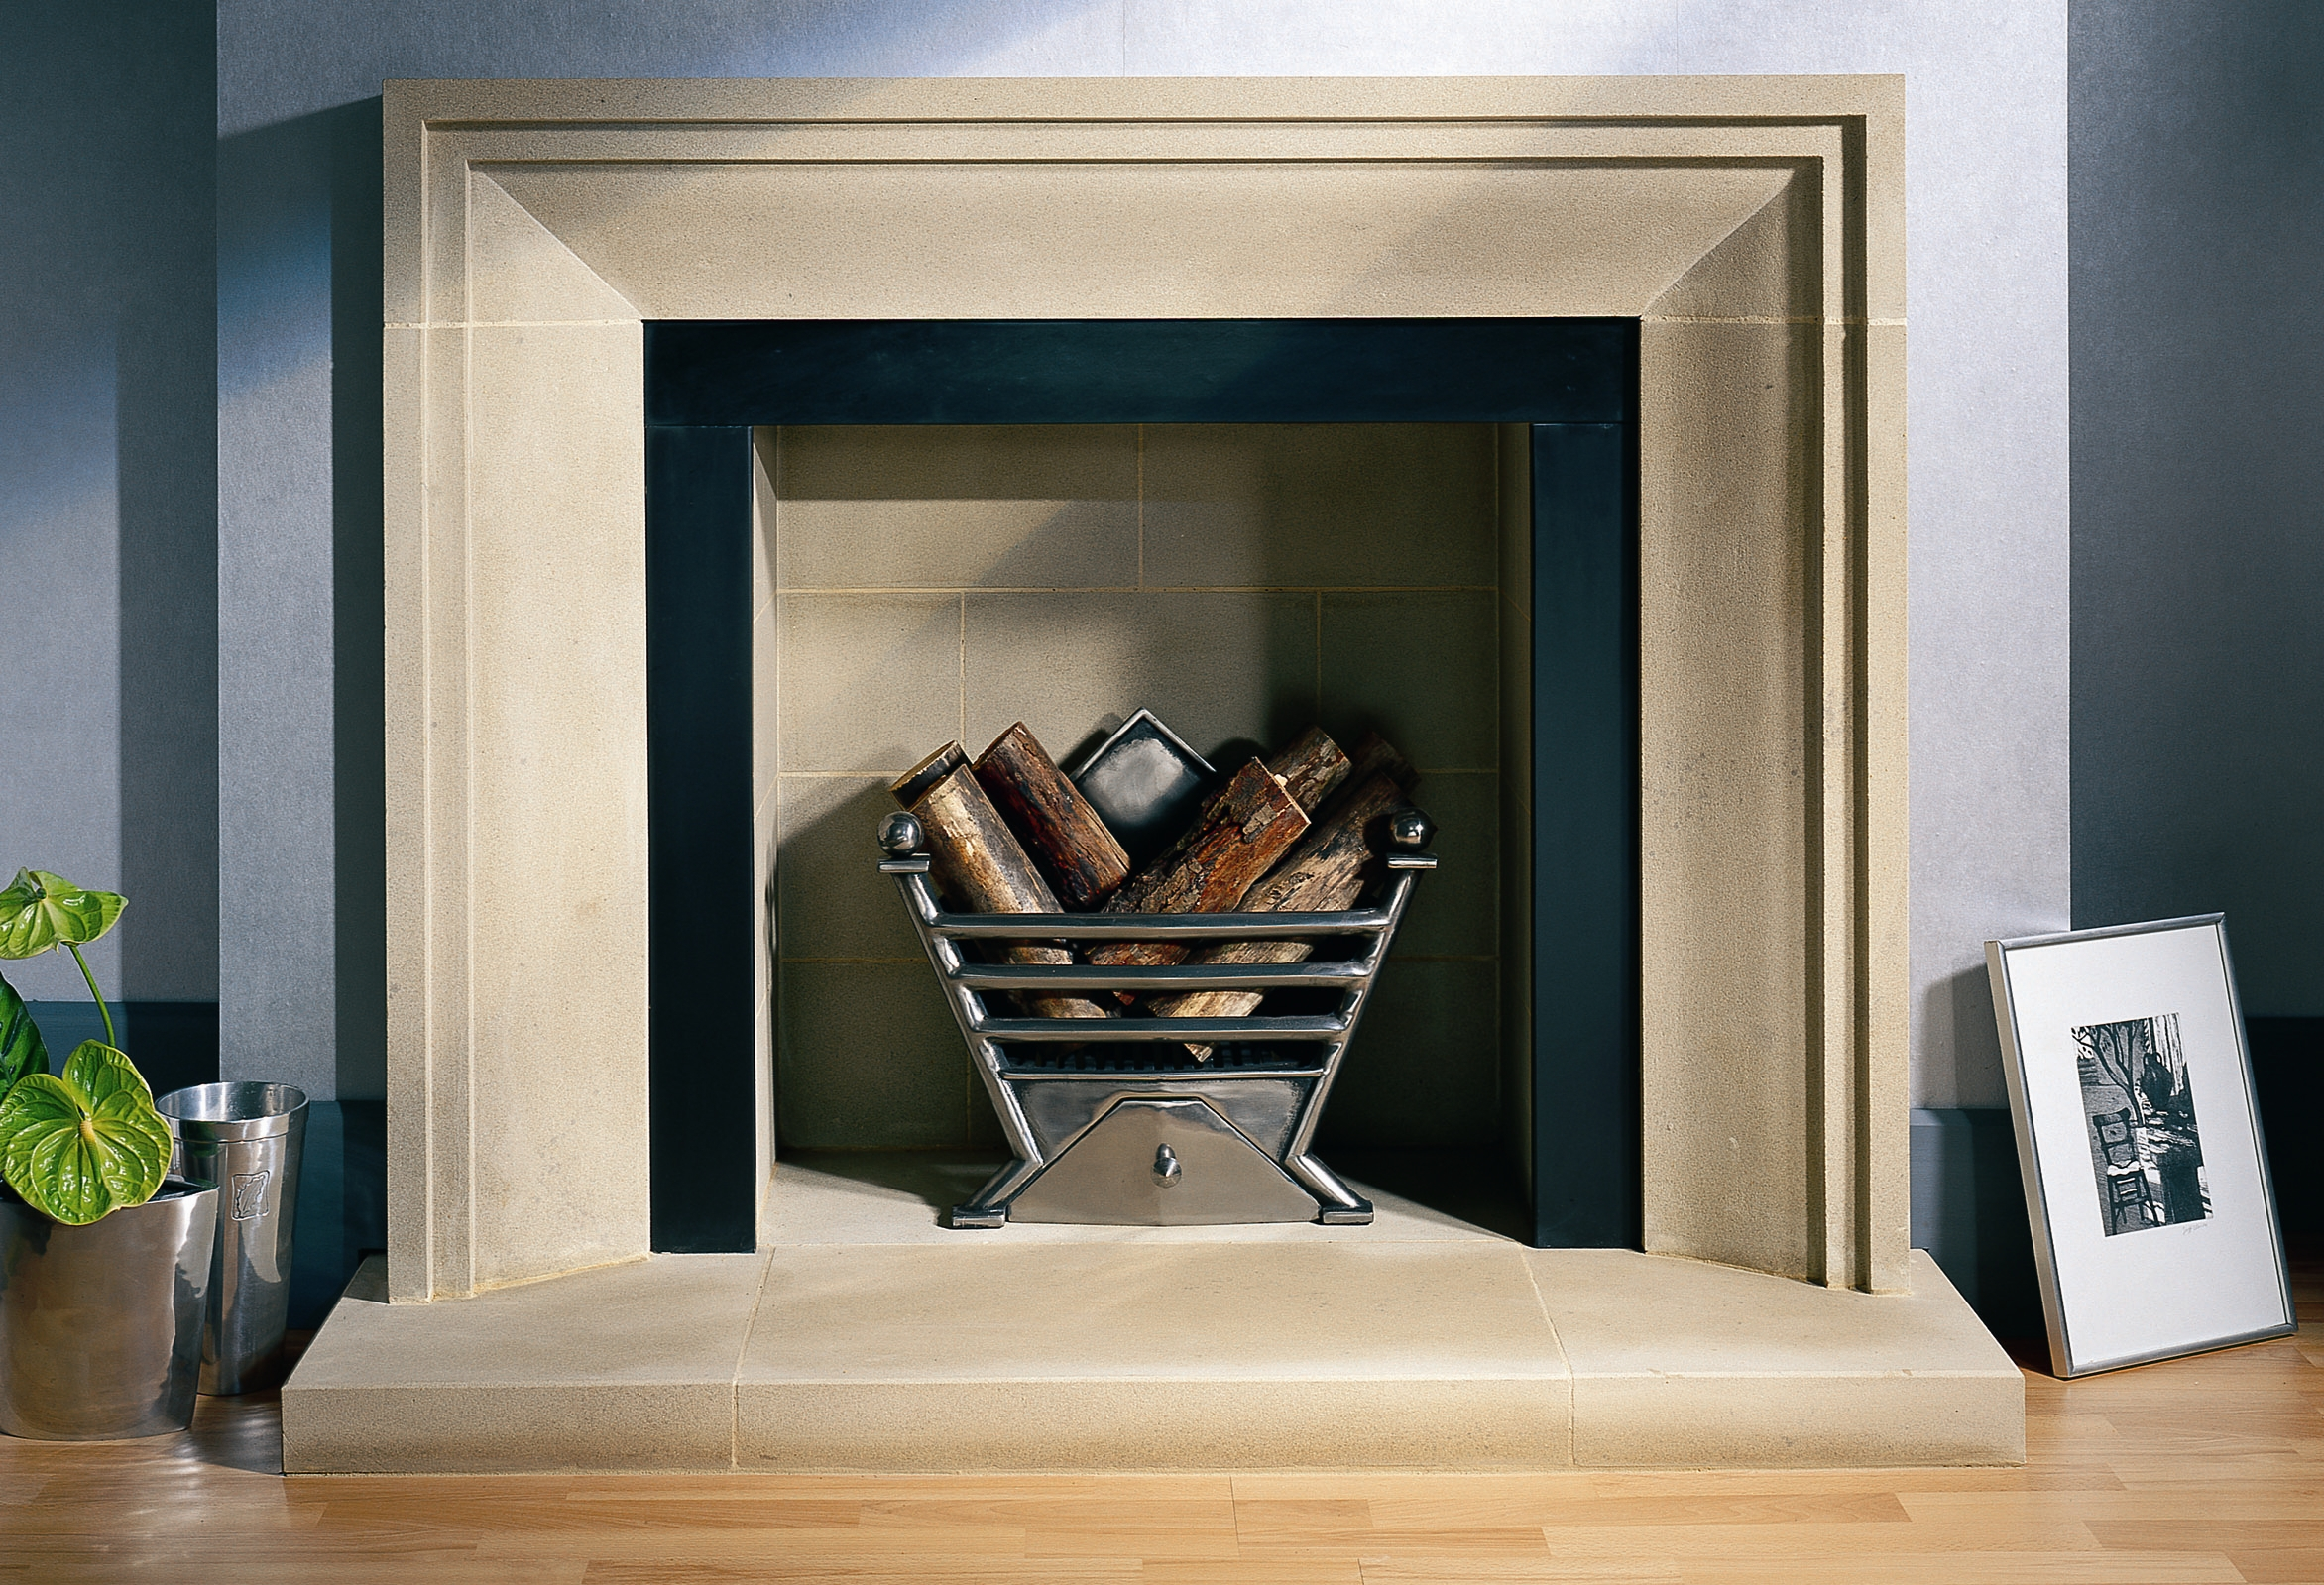 23. Derbyshire stone fire surround with slate slip and art deco basket – Kensington